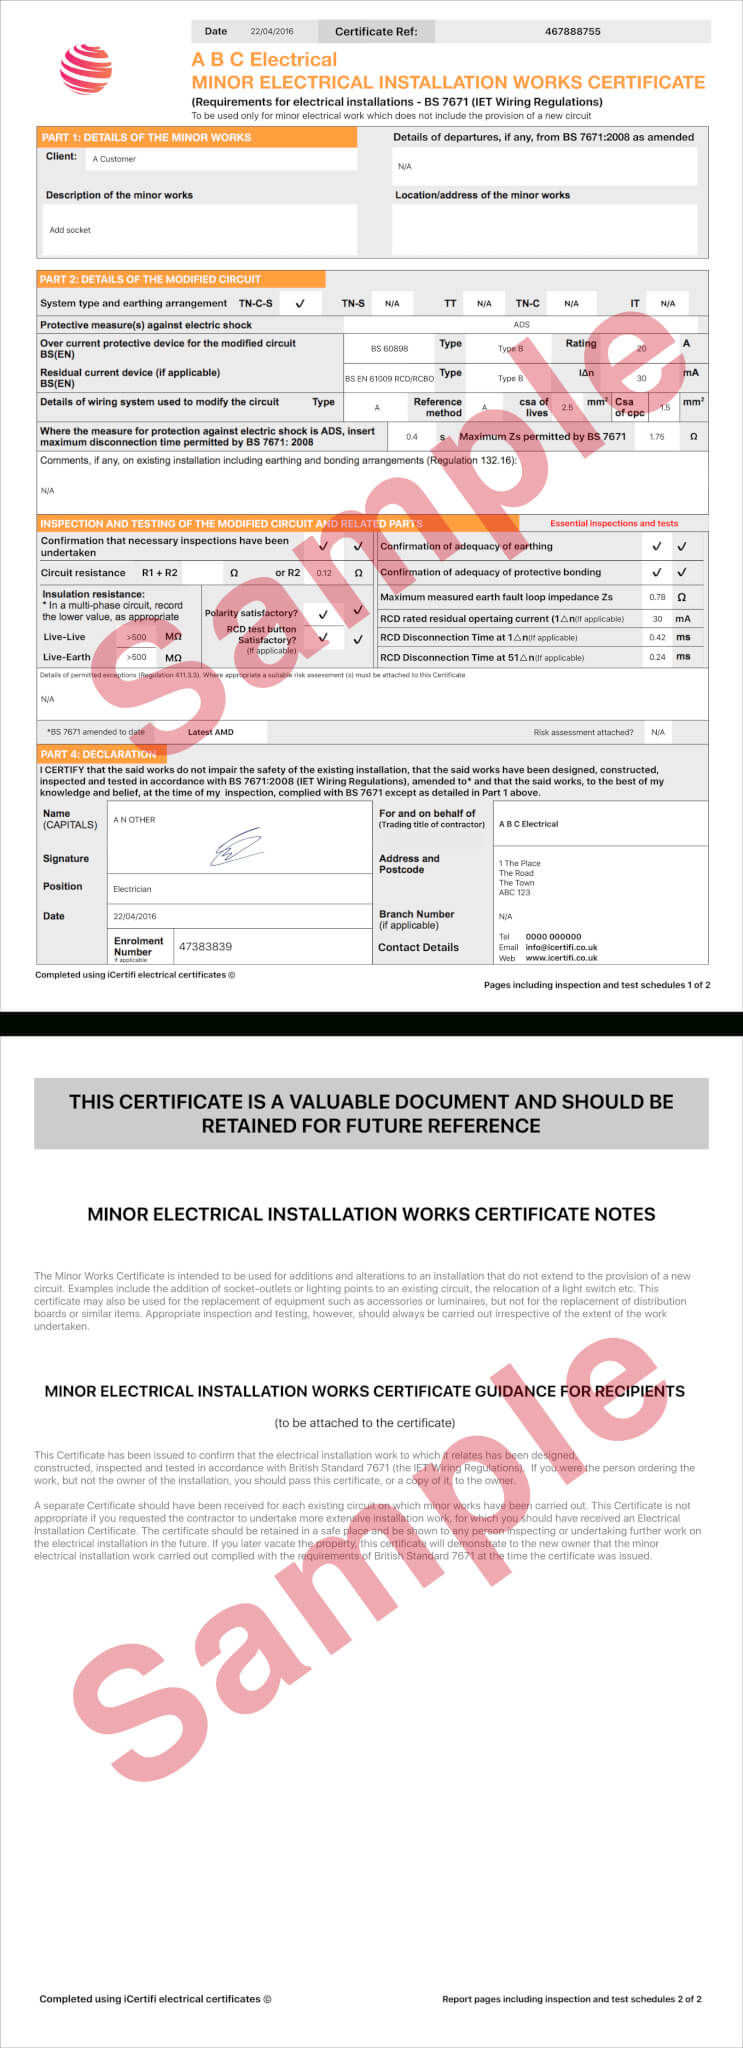 Electrical Minor Works Certificate Template Throughout Electrical Minor Works Certificate Template